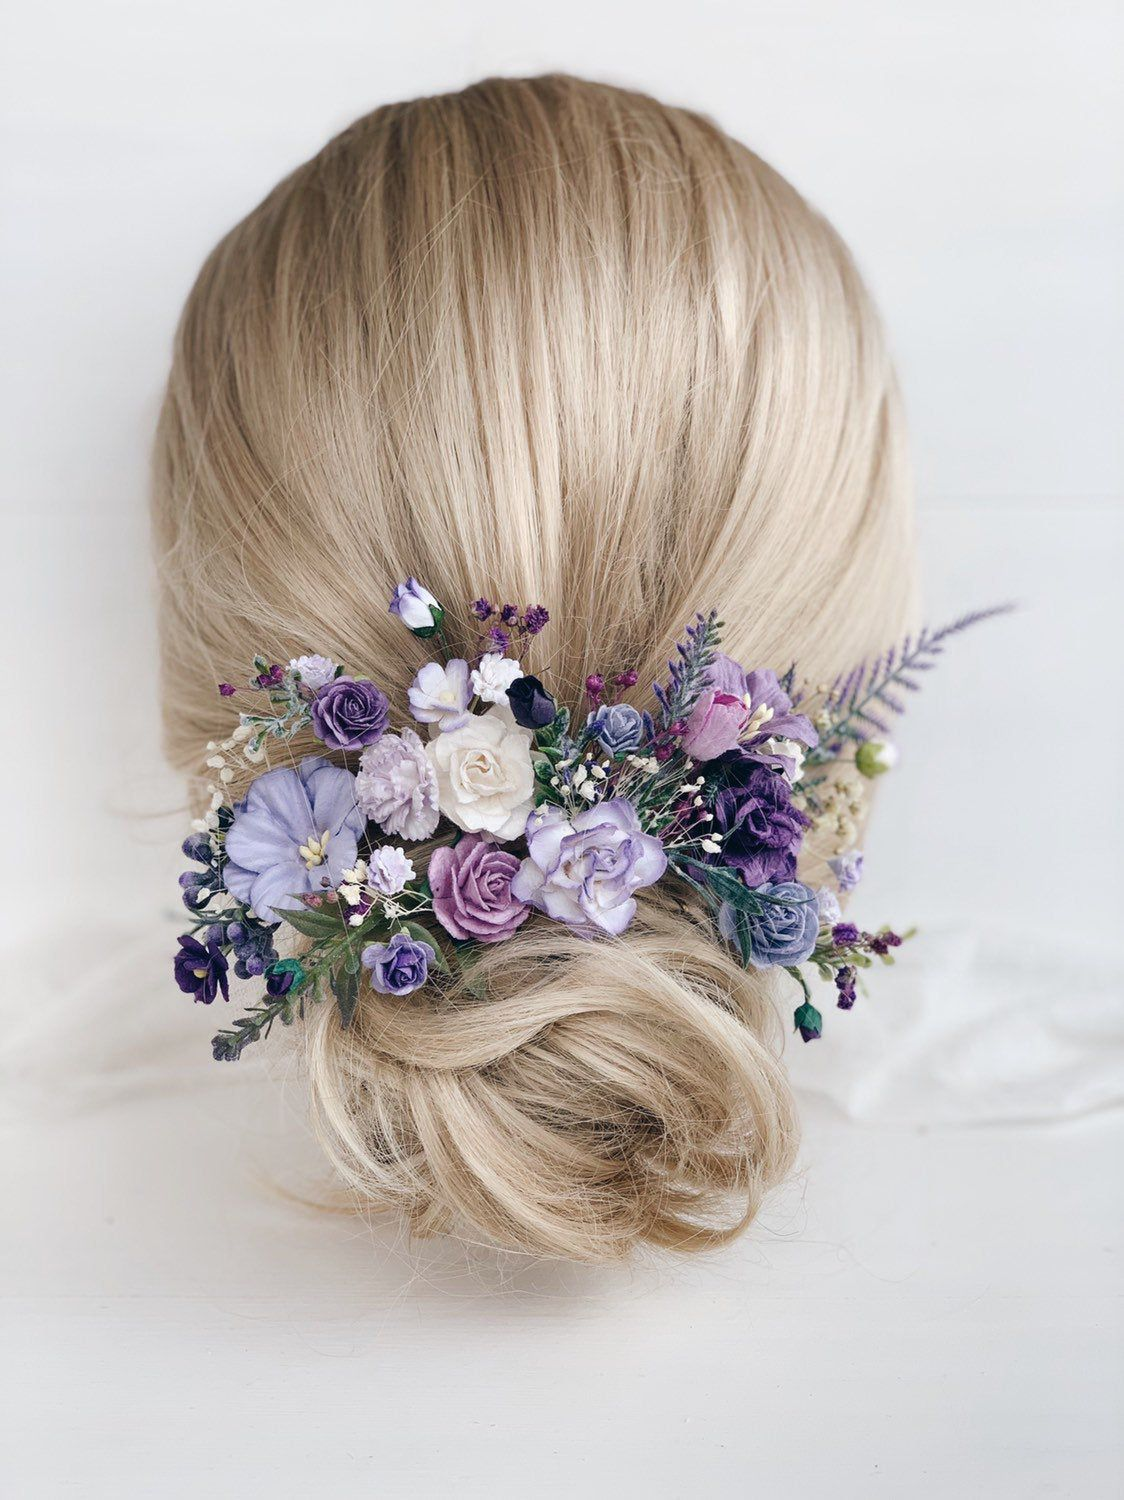 Flower Hair Pins Wedding Flower Hair Clip Lavender Flower Etsy In 2020 Flower Hair Pin Bridal Flower Hair Pins Flower Hair Pieces